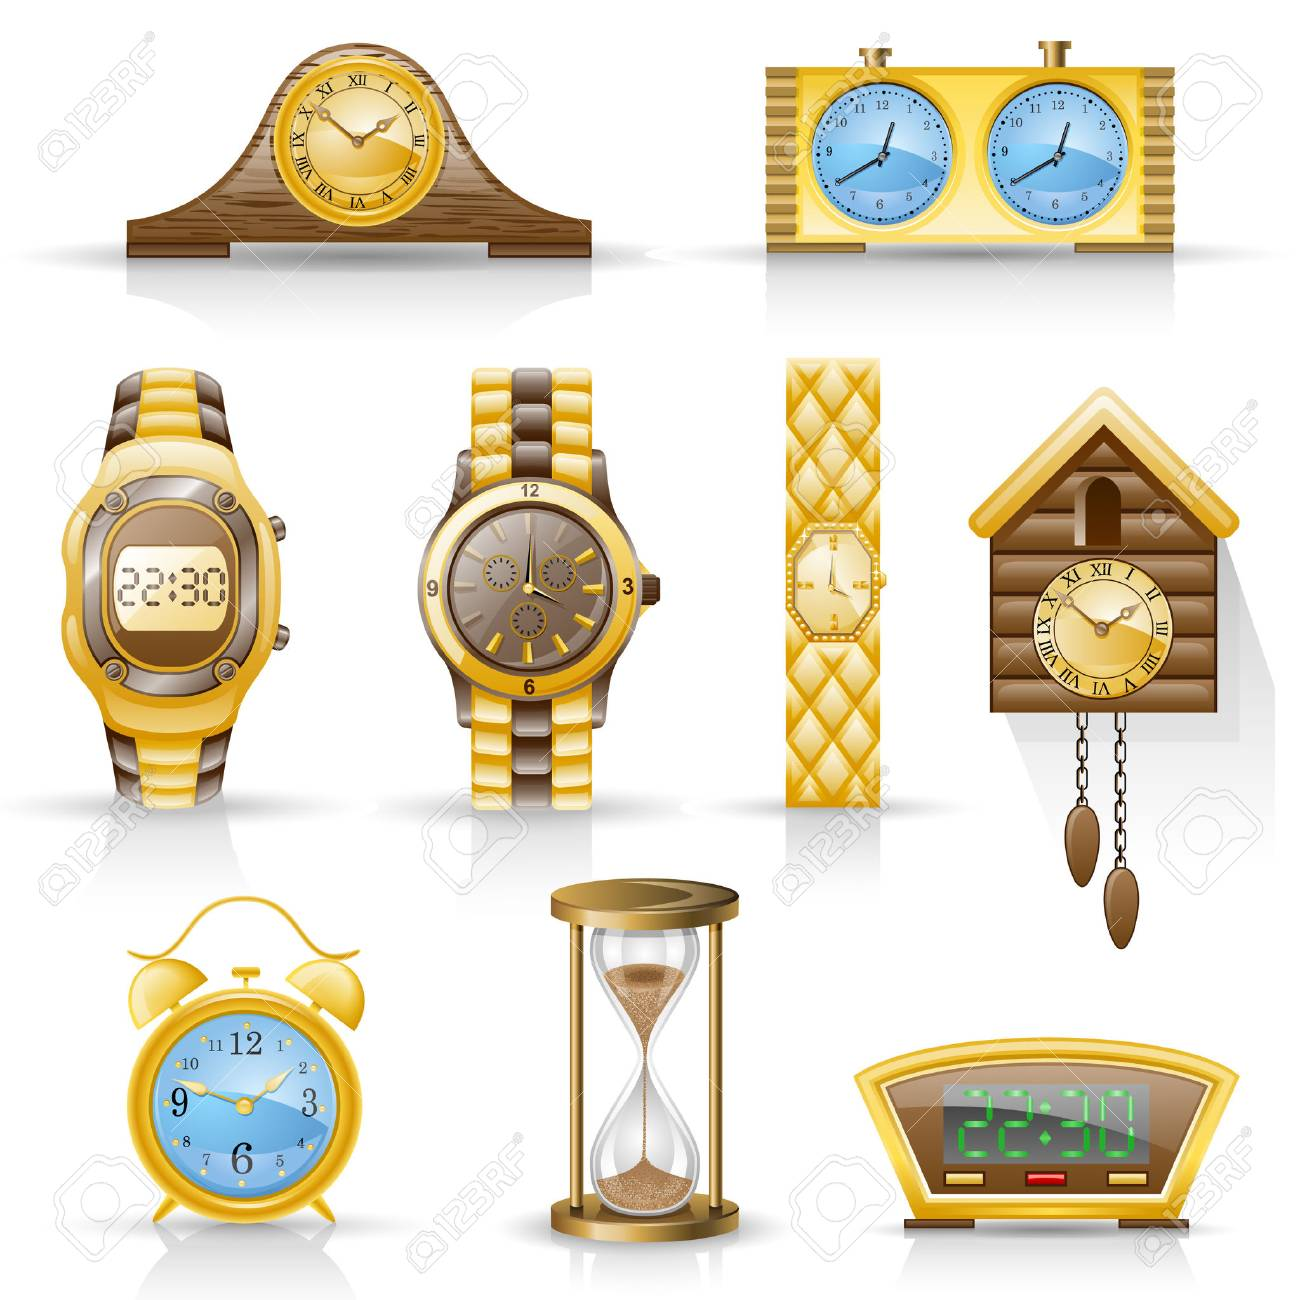 Watches isolated on white background. Stock Vector - 8614430